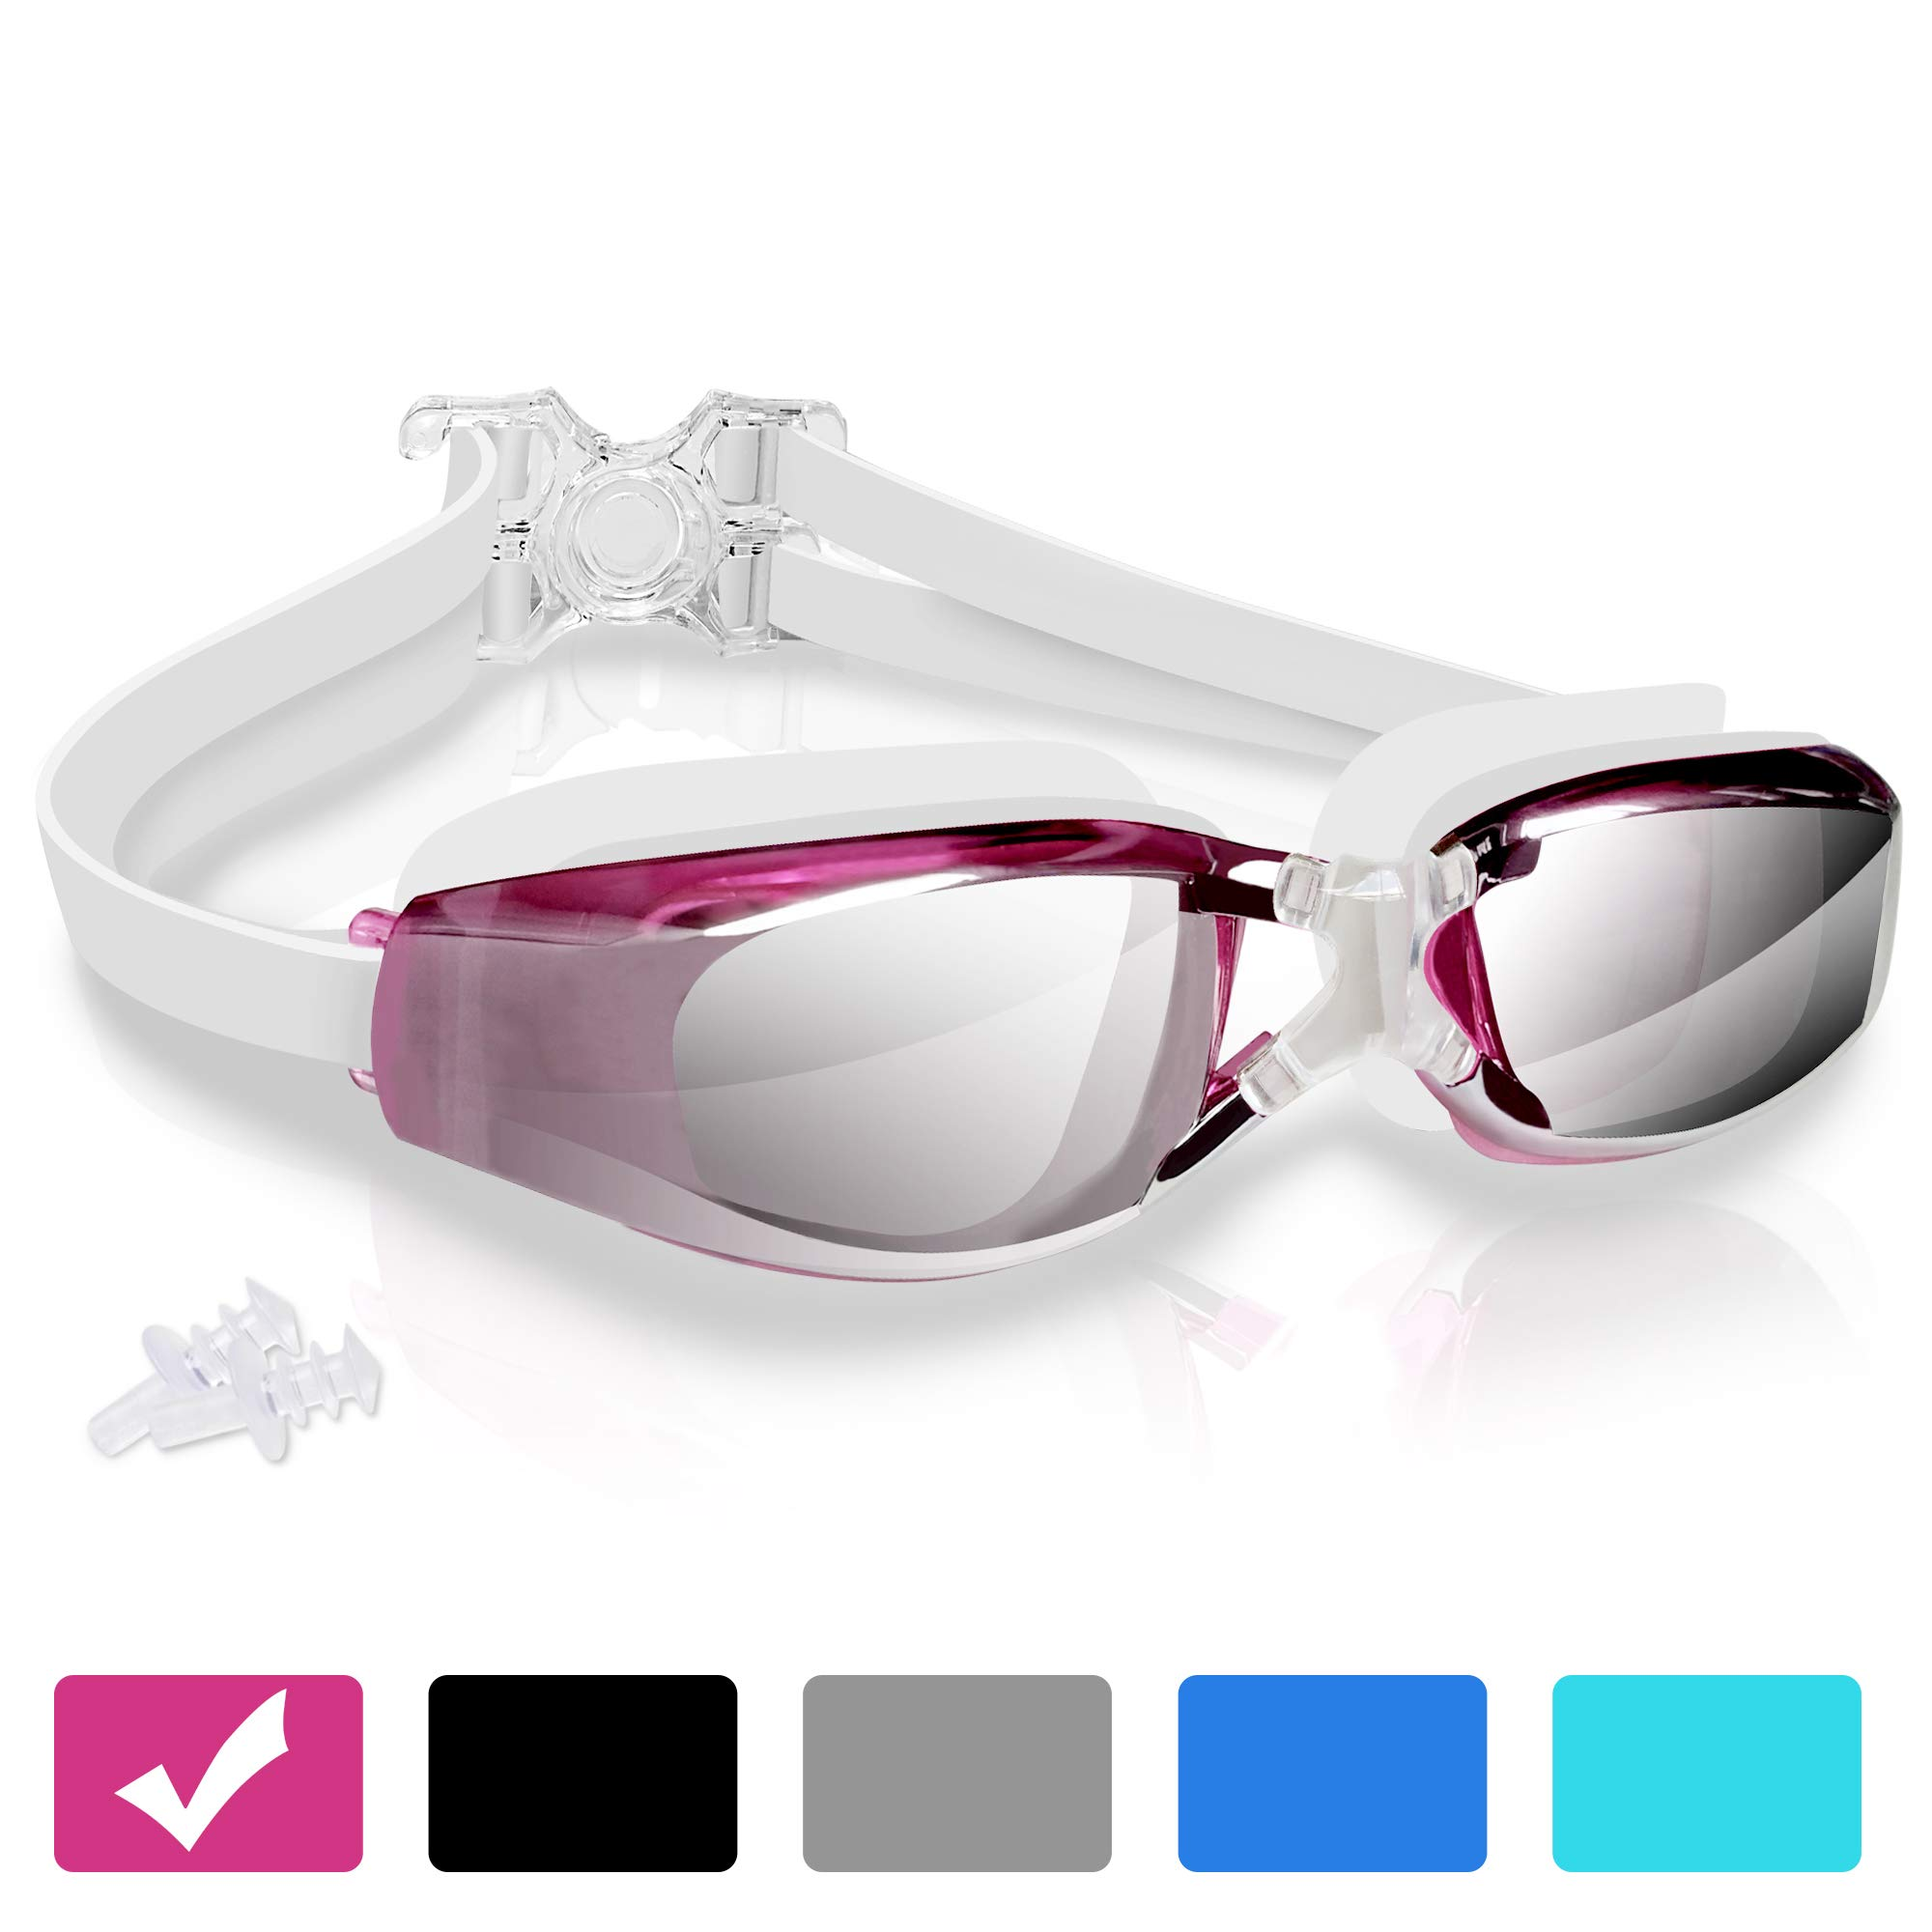 arteesol Swimming Goggles,No Leaking Anti Fog Swim Goggles Crystal Clear Vision Mirrored with UV Protection,Free Protective Case and Earplug Included,for Adults and Kids 5 Colours